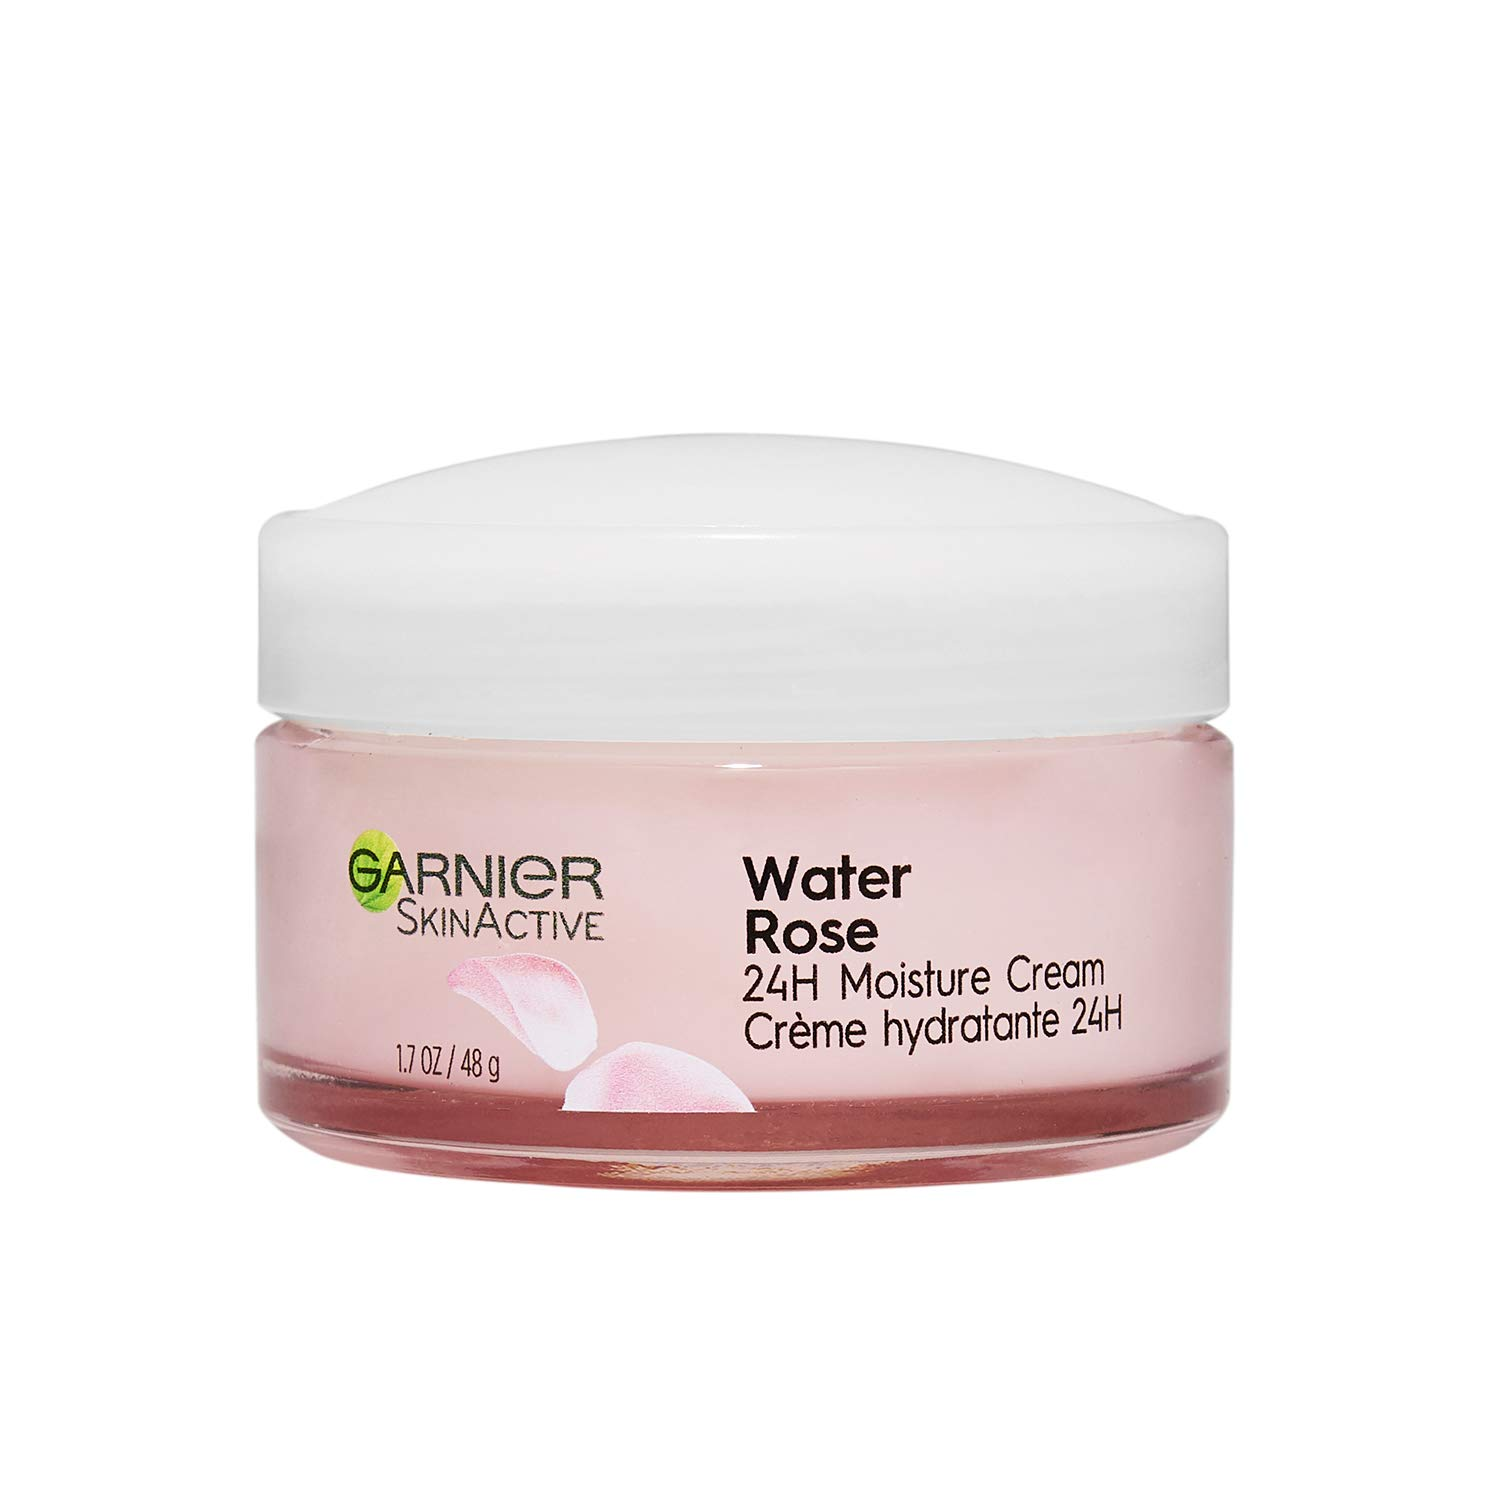 Garnier SkinActive 603084571253 24H Moisture Cream with Rose Water and Hyaluronic Acid, Face Moisturizer, For Normal to Dry Skin, 1.7 Fl Oz